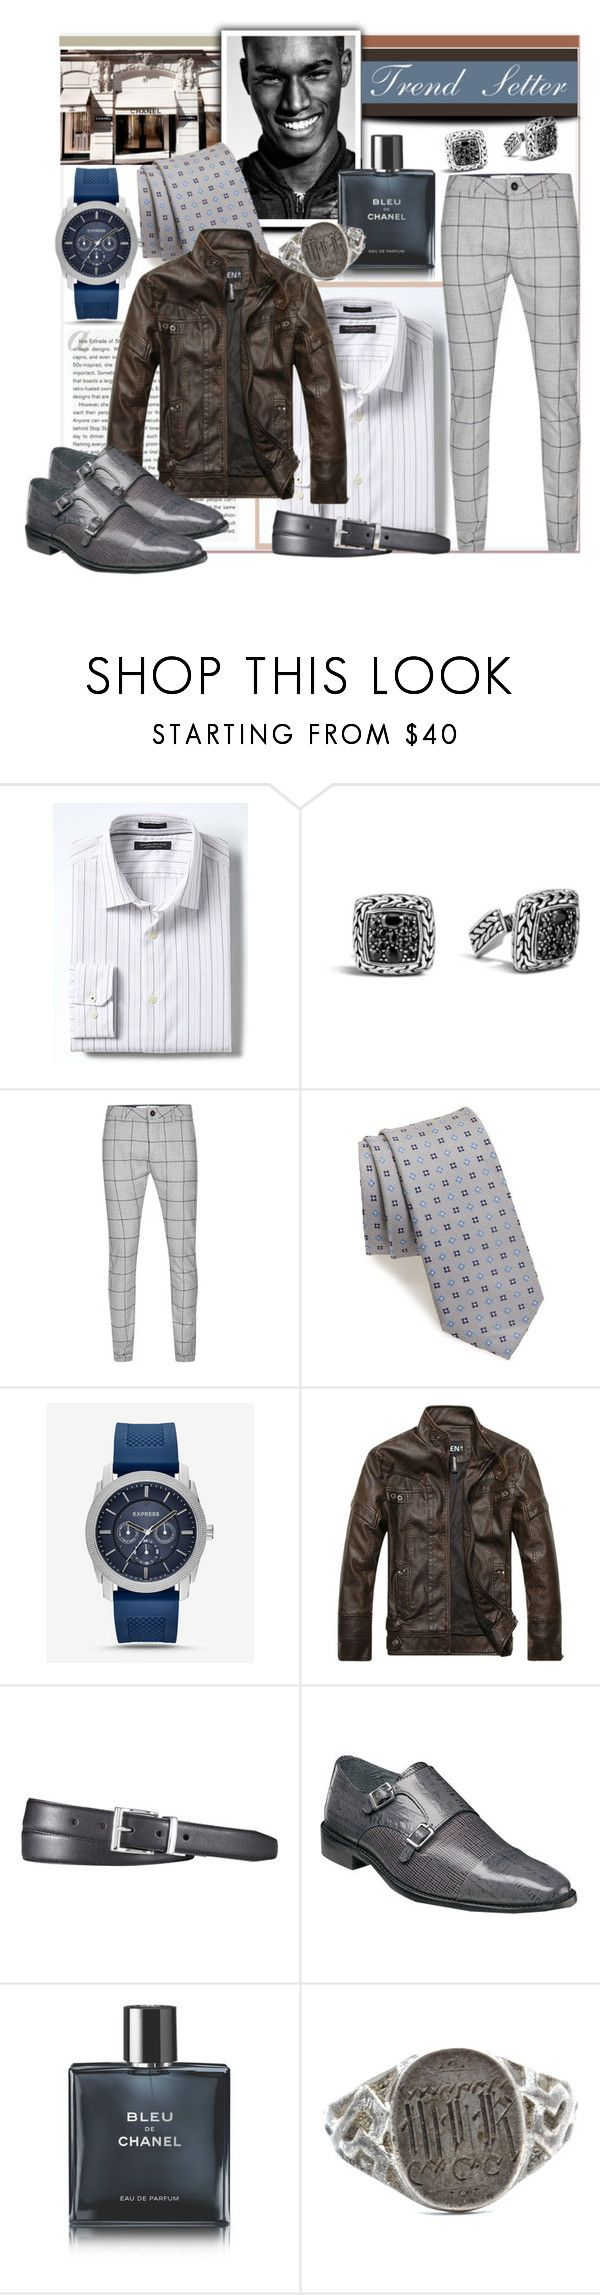 """Trend Setter"" by prettyinjewels ❤ liked on Polyvore featuring Banana Republic, Stop Staring!, John Hardy, Topman, Nordstrom, Express, Polo Ralph Lauren, Stacy Adams, Chanel and Vintage"